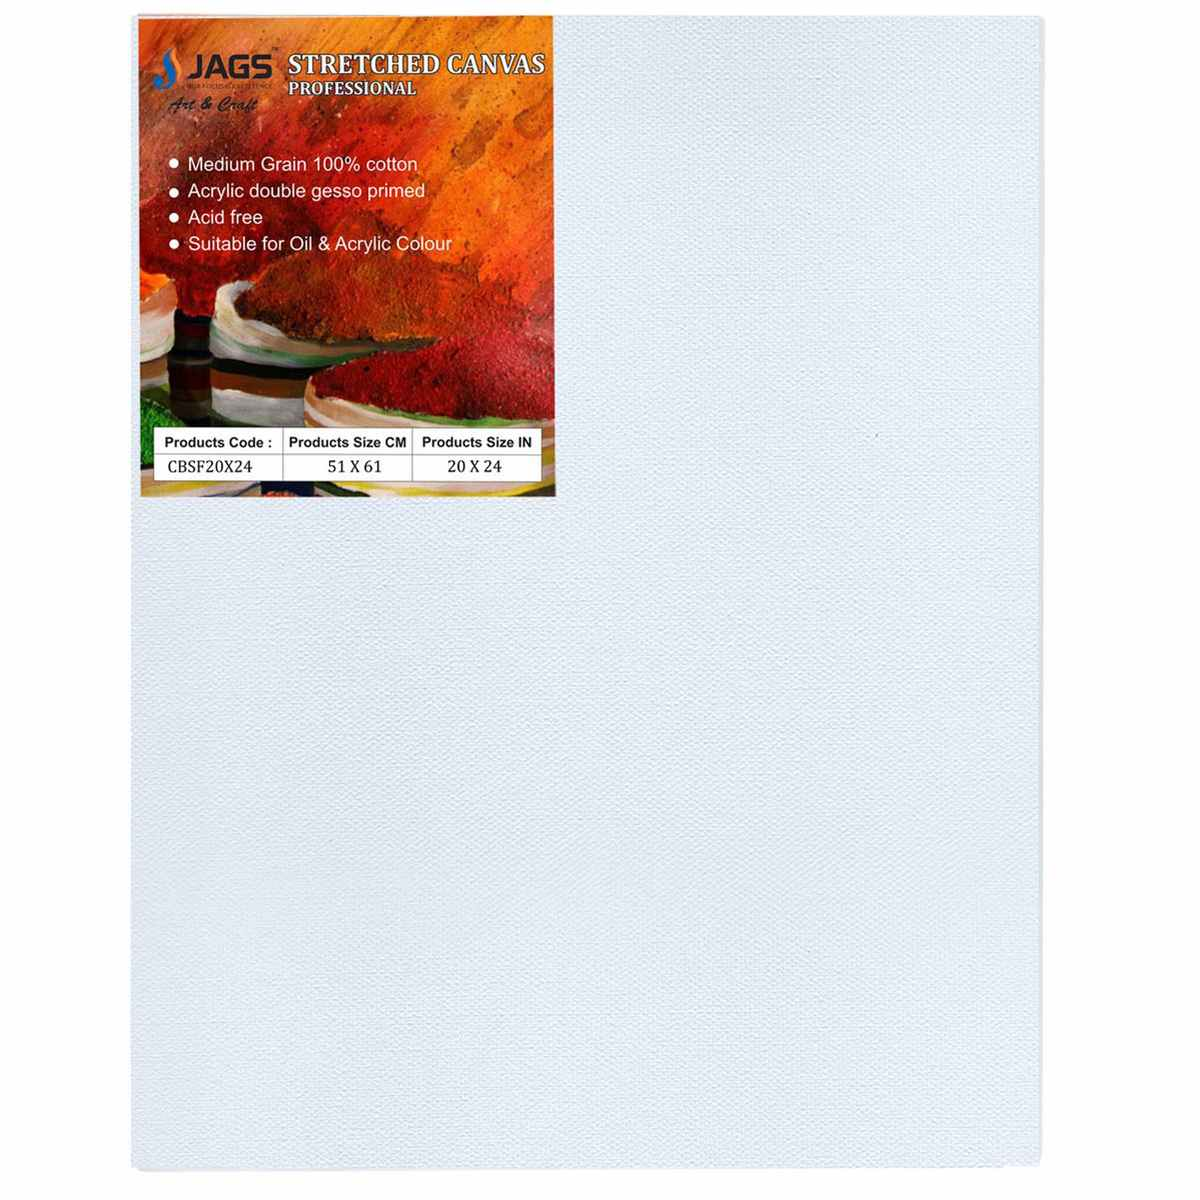 Large Stretched Canvas Board (20X24 Inch)